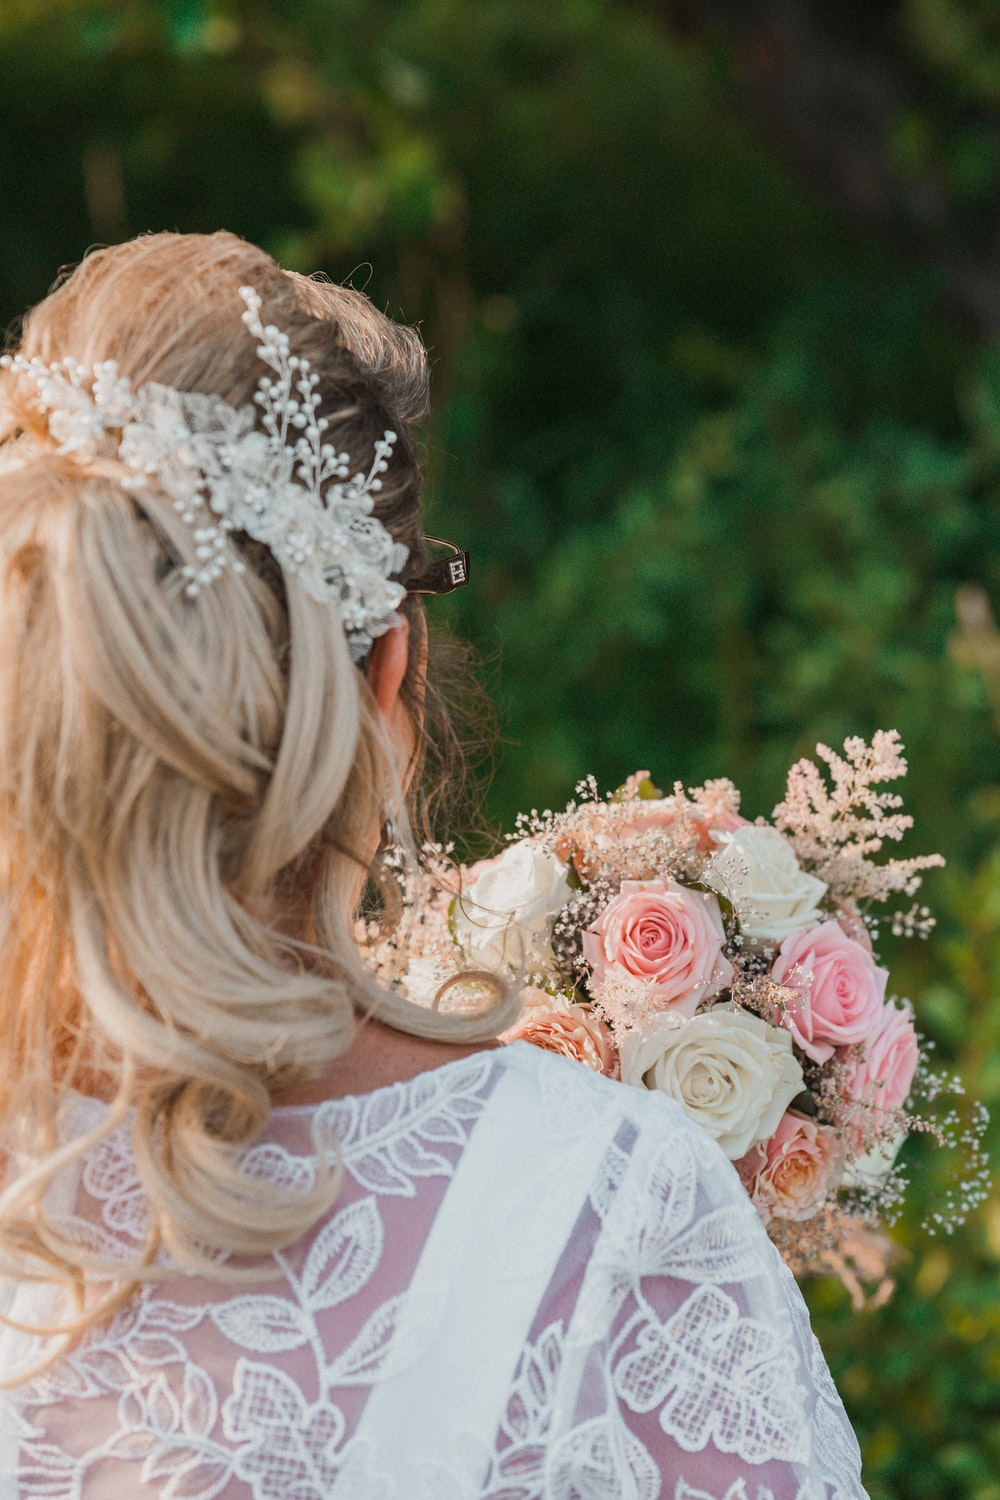 woman in white floral dress with white floral headband